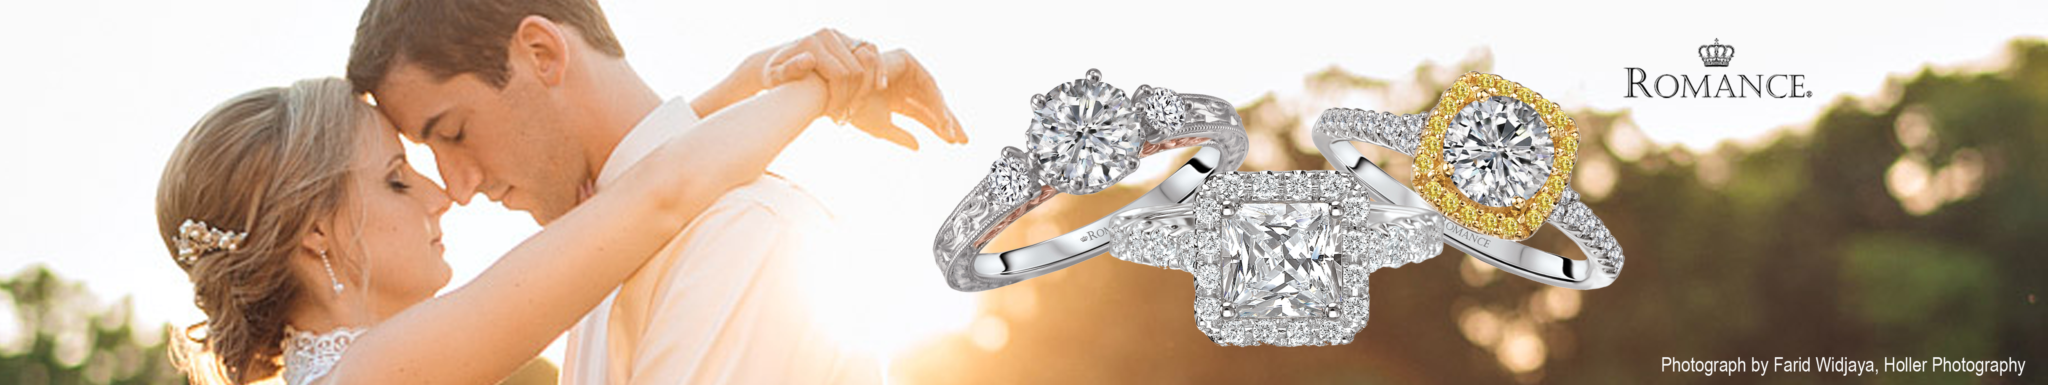 Engagement Rings Romance Banner